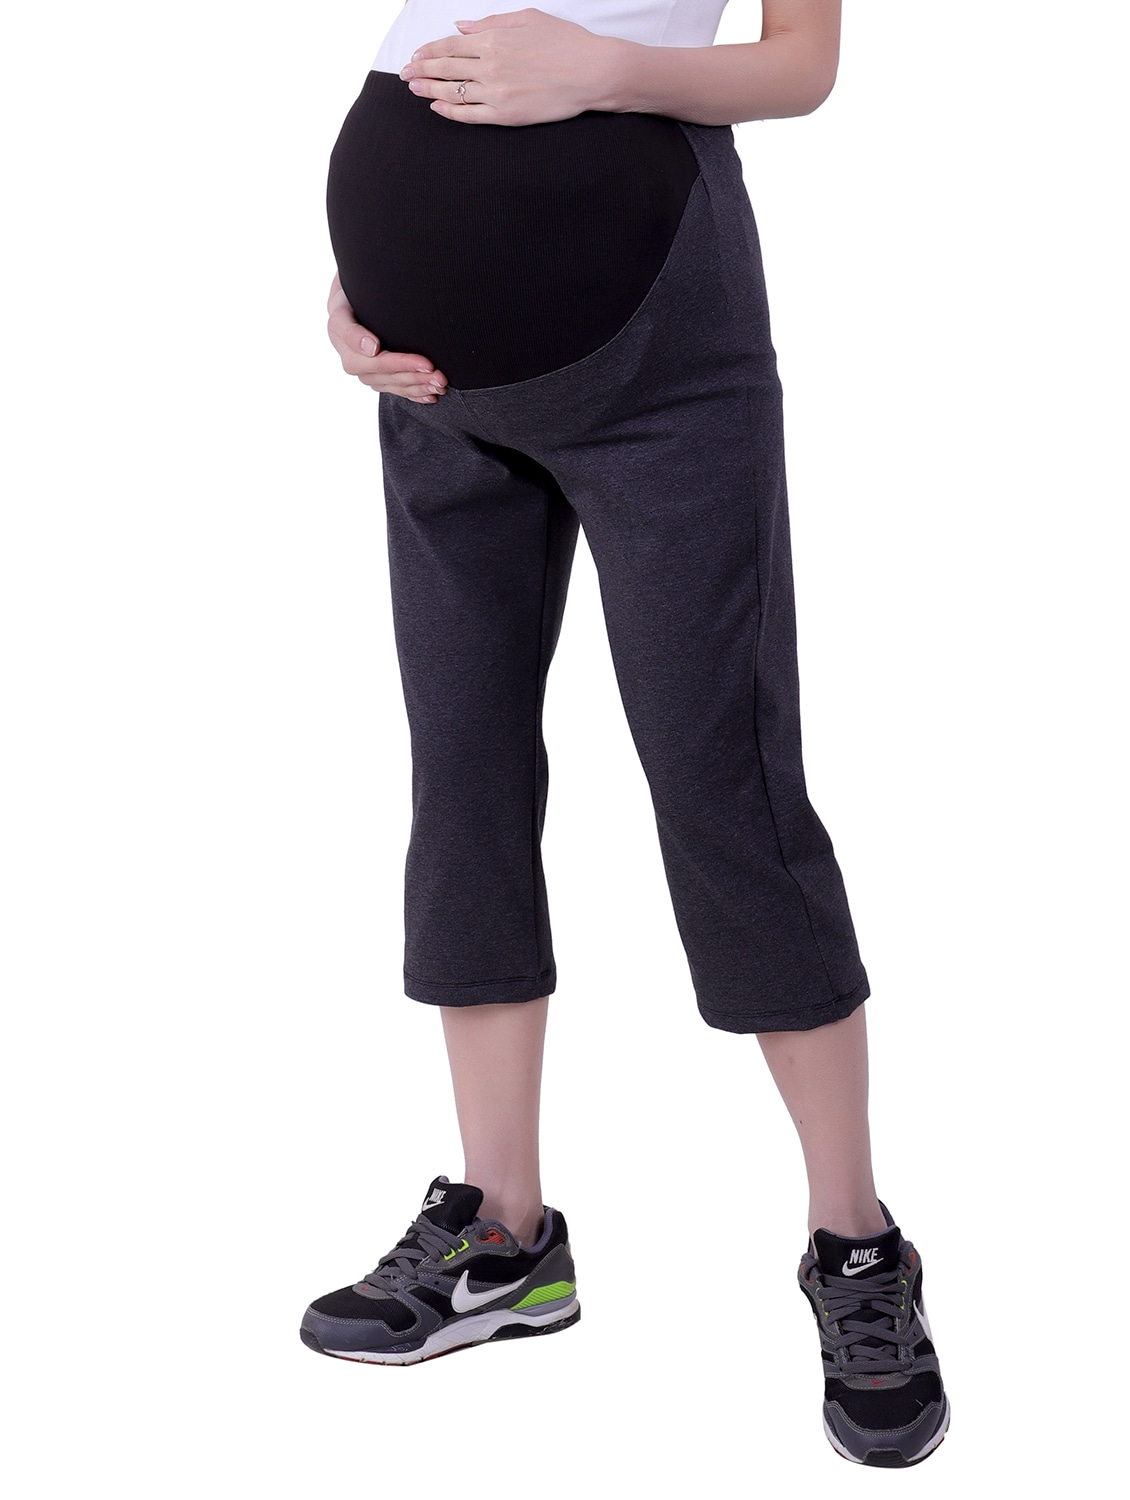 99b2395b61212 Buy Color Block Maternity Wear Capri for Women from Finesse for ₹1099 at  26% off | 2019 Limeroad.com